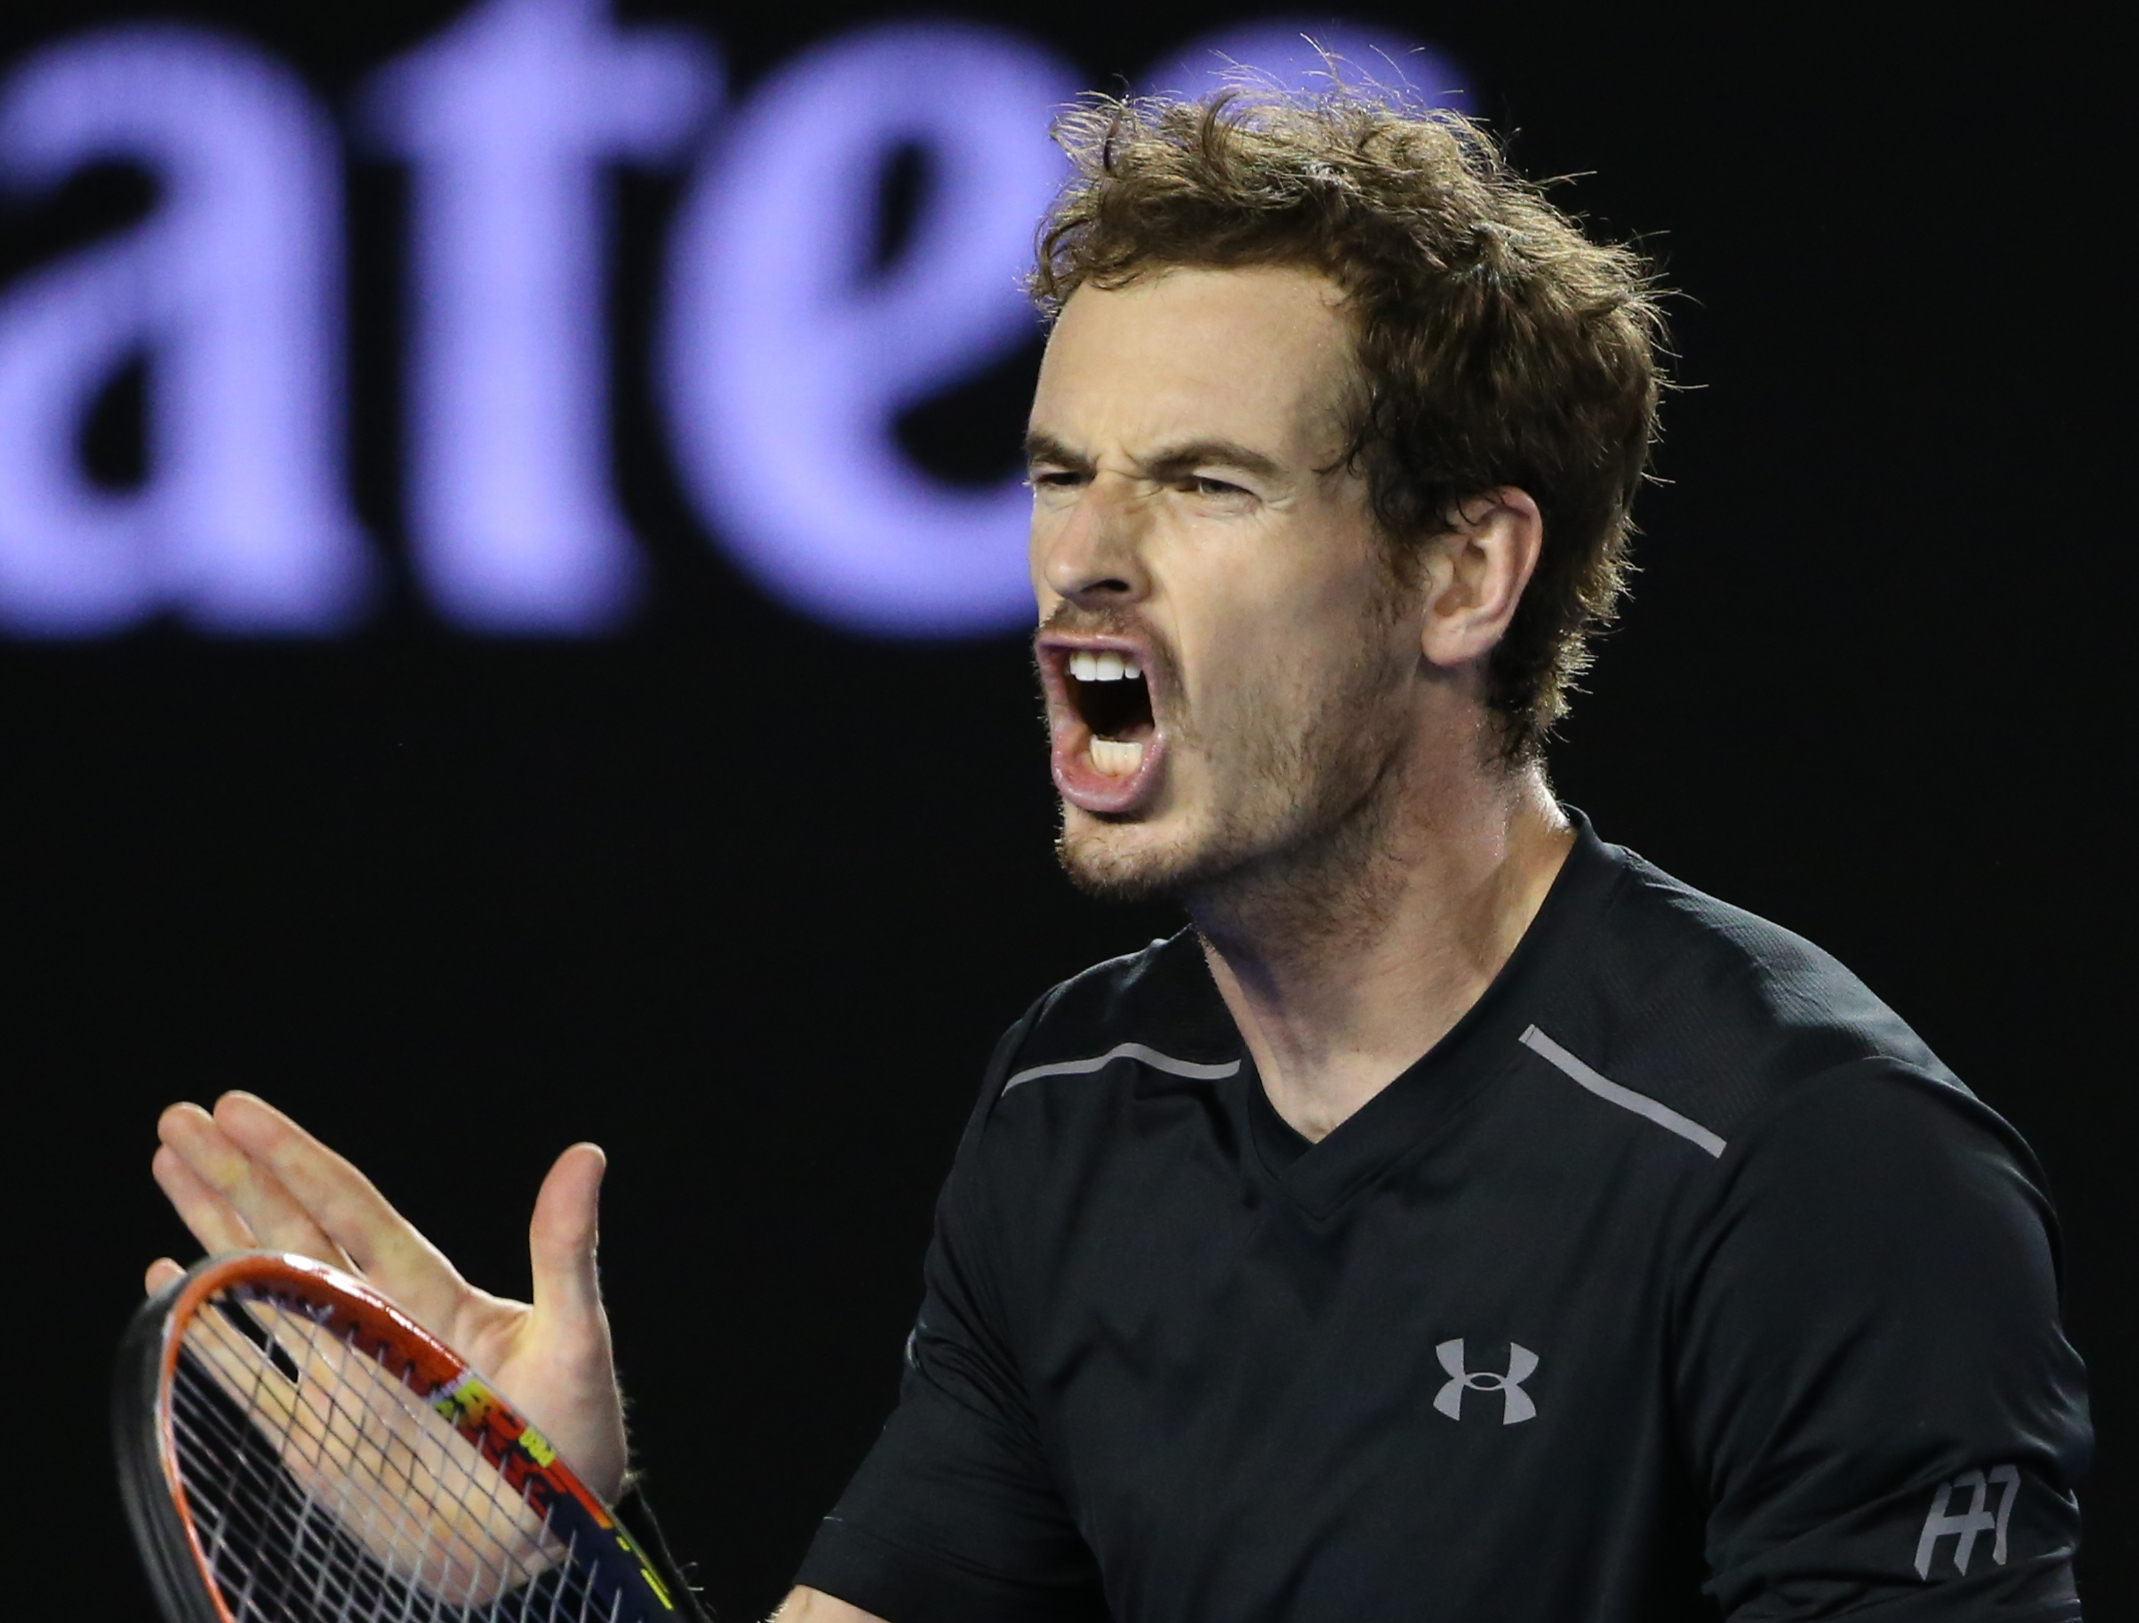 Andy Murray of Britain yells during his match against Novak Djokovic of Serbia in the men's singles final at the Australian Open tennis championships in Melbourne, Australia, Sunday, Jan. 31, 2016.(AP Photo/Rick Rycroft)